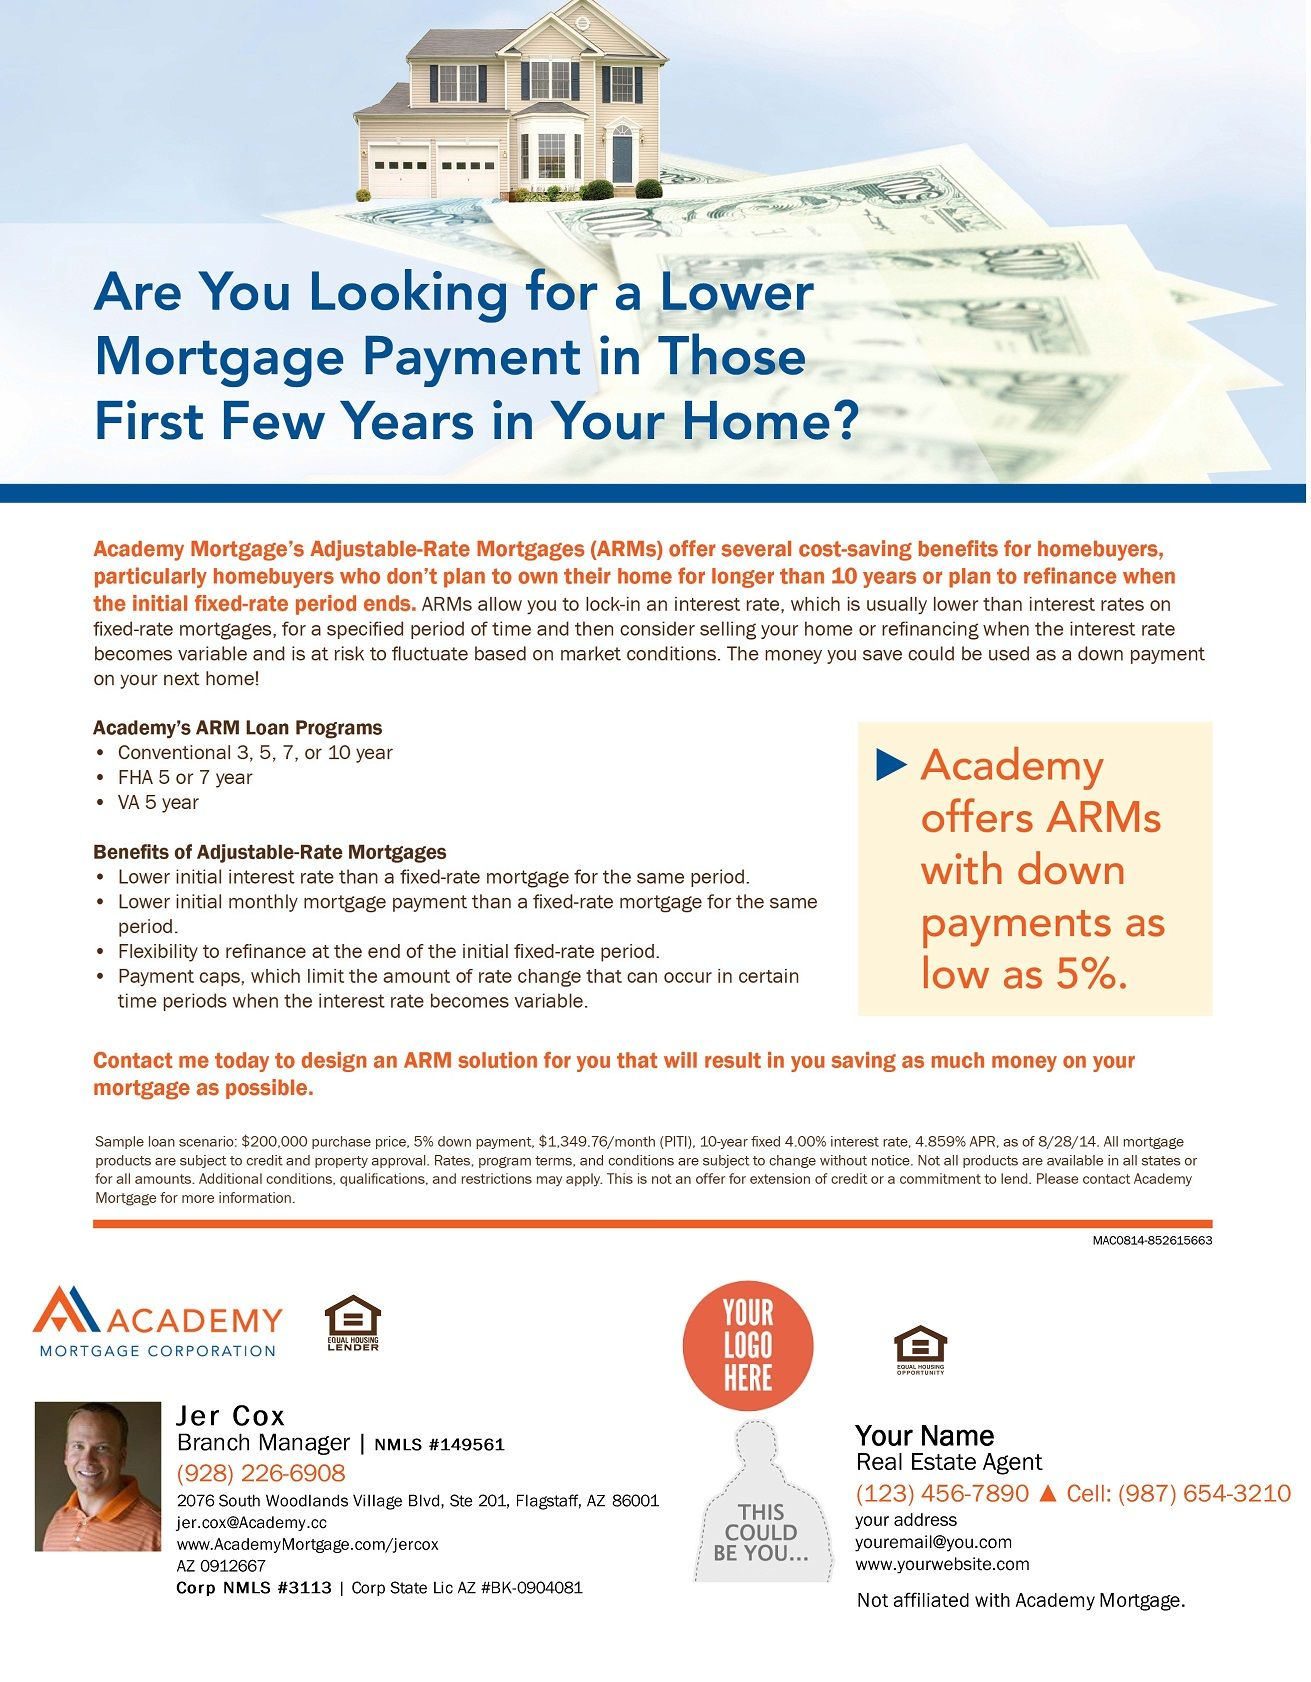 Arms Co Branded Mortgage Payment Home Buying How To Plan